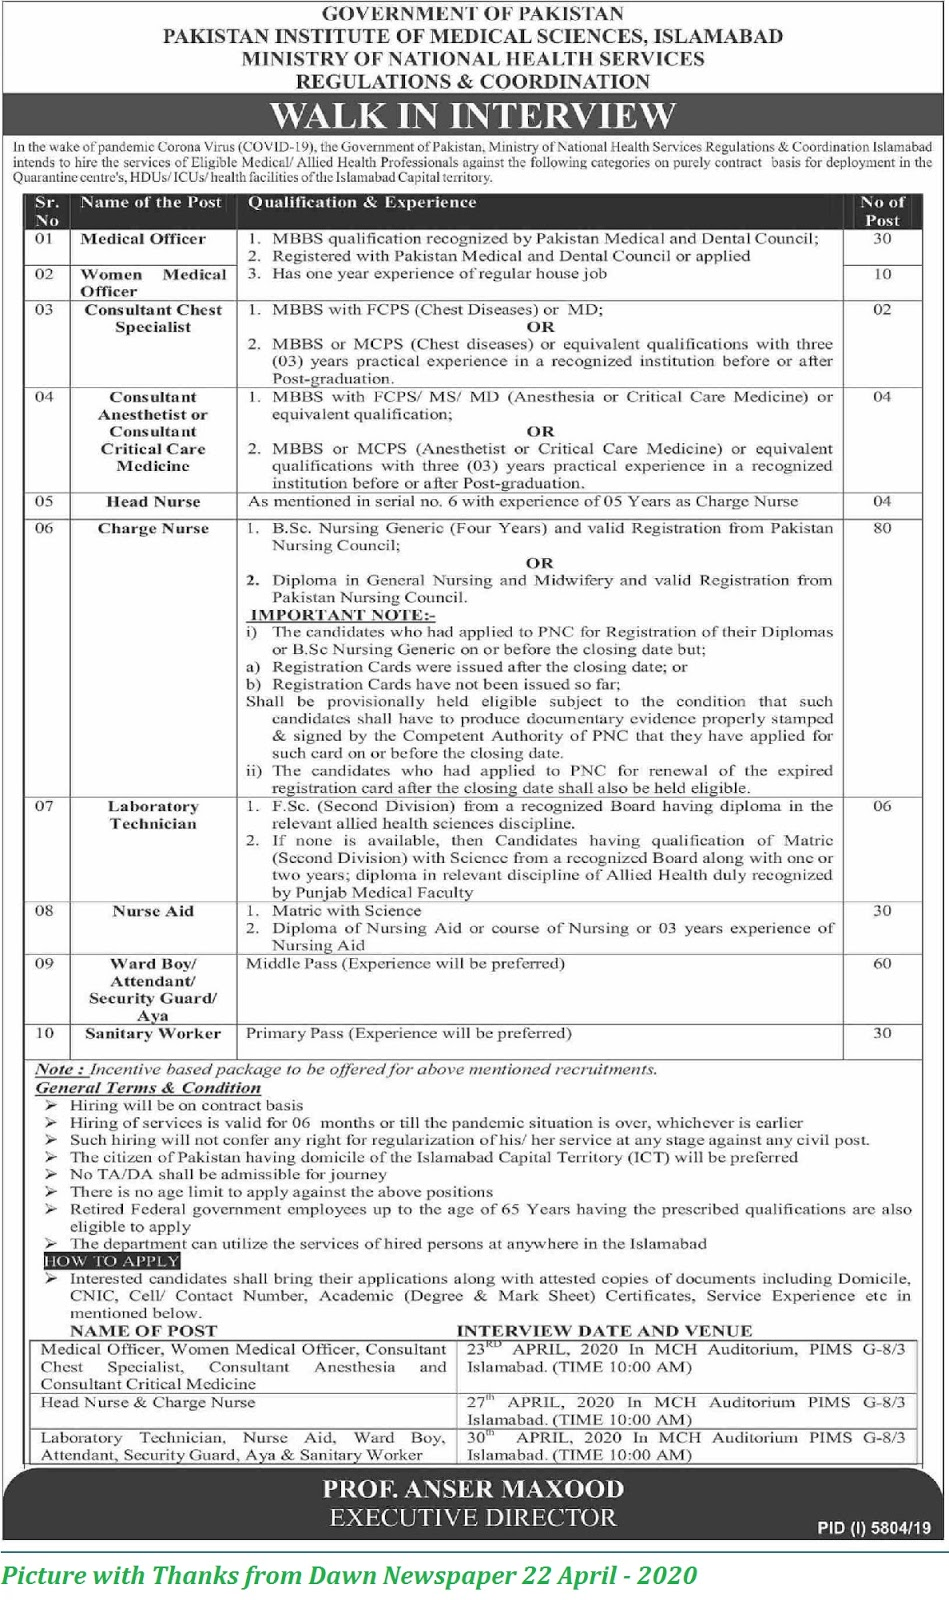 PIMS Jobs 2020 - Pakistan Institute of Medical Sciences Islamabad Jobs 2020